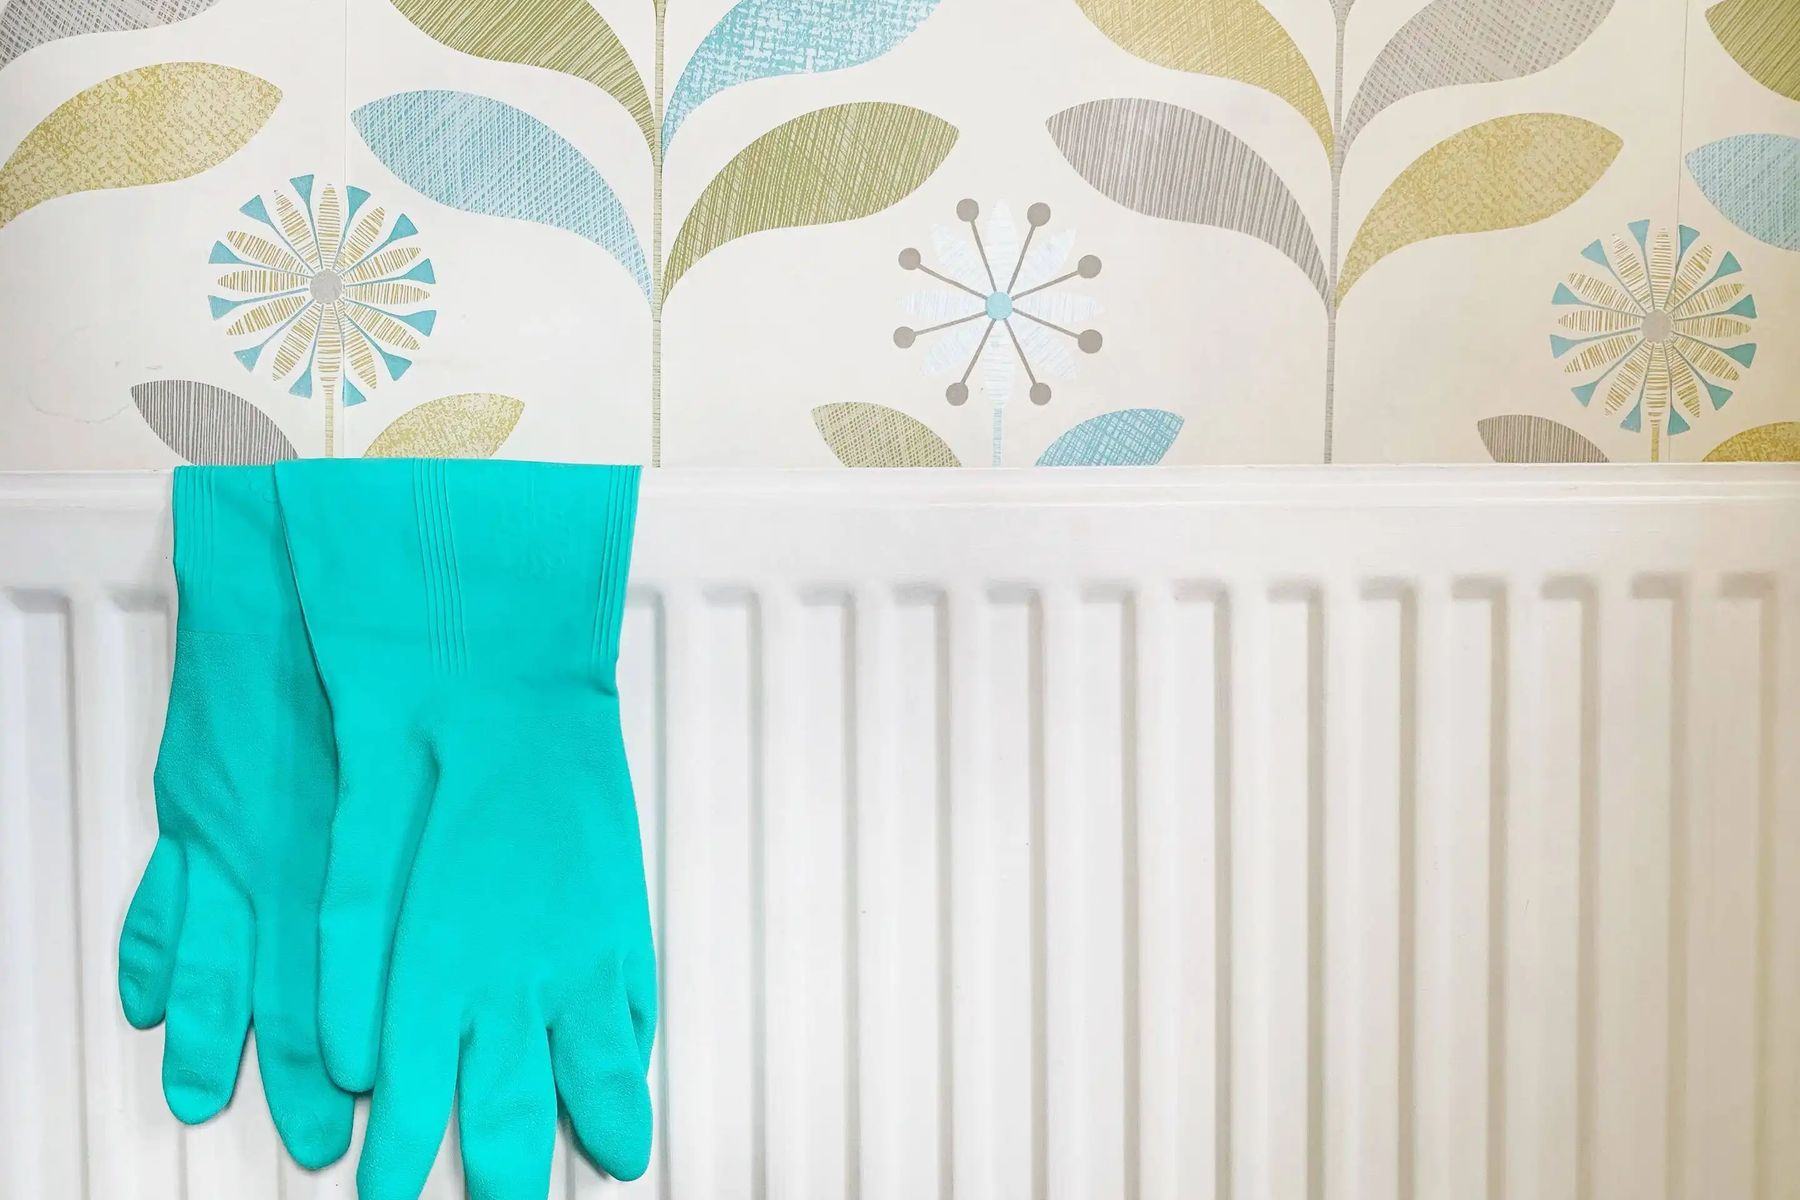 Blue cleaning gloves hanging over white radiator as part of radiator cleaning process